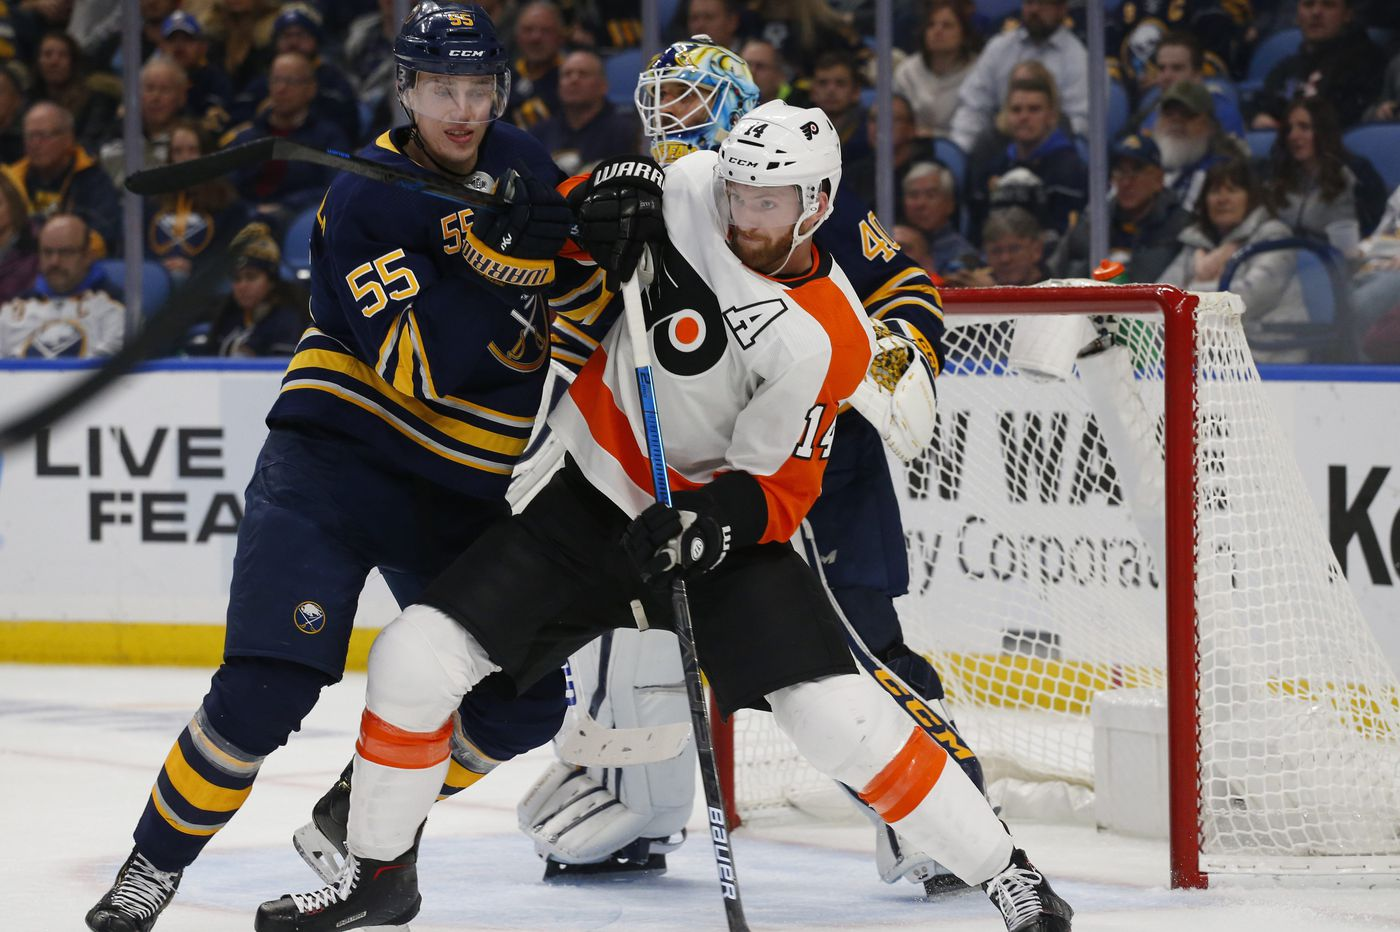 Flyers get jumped early in 5-2 loss to Sabres